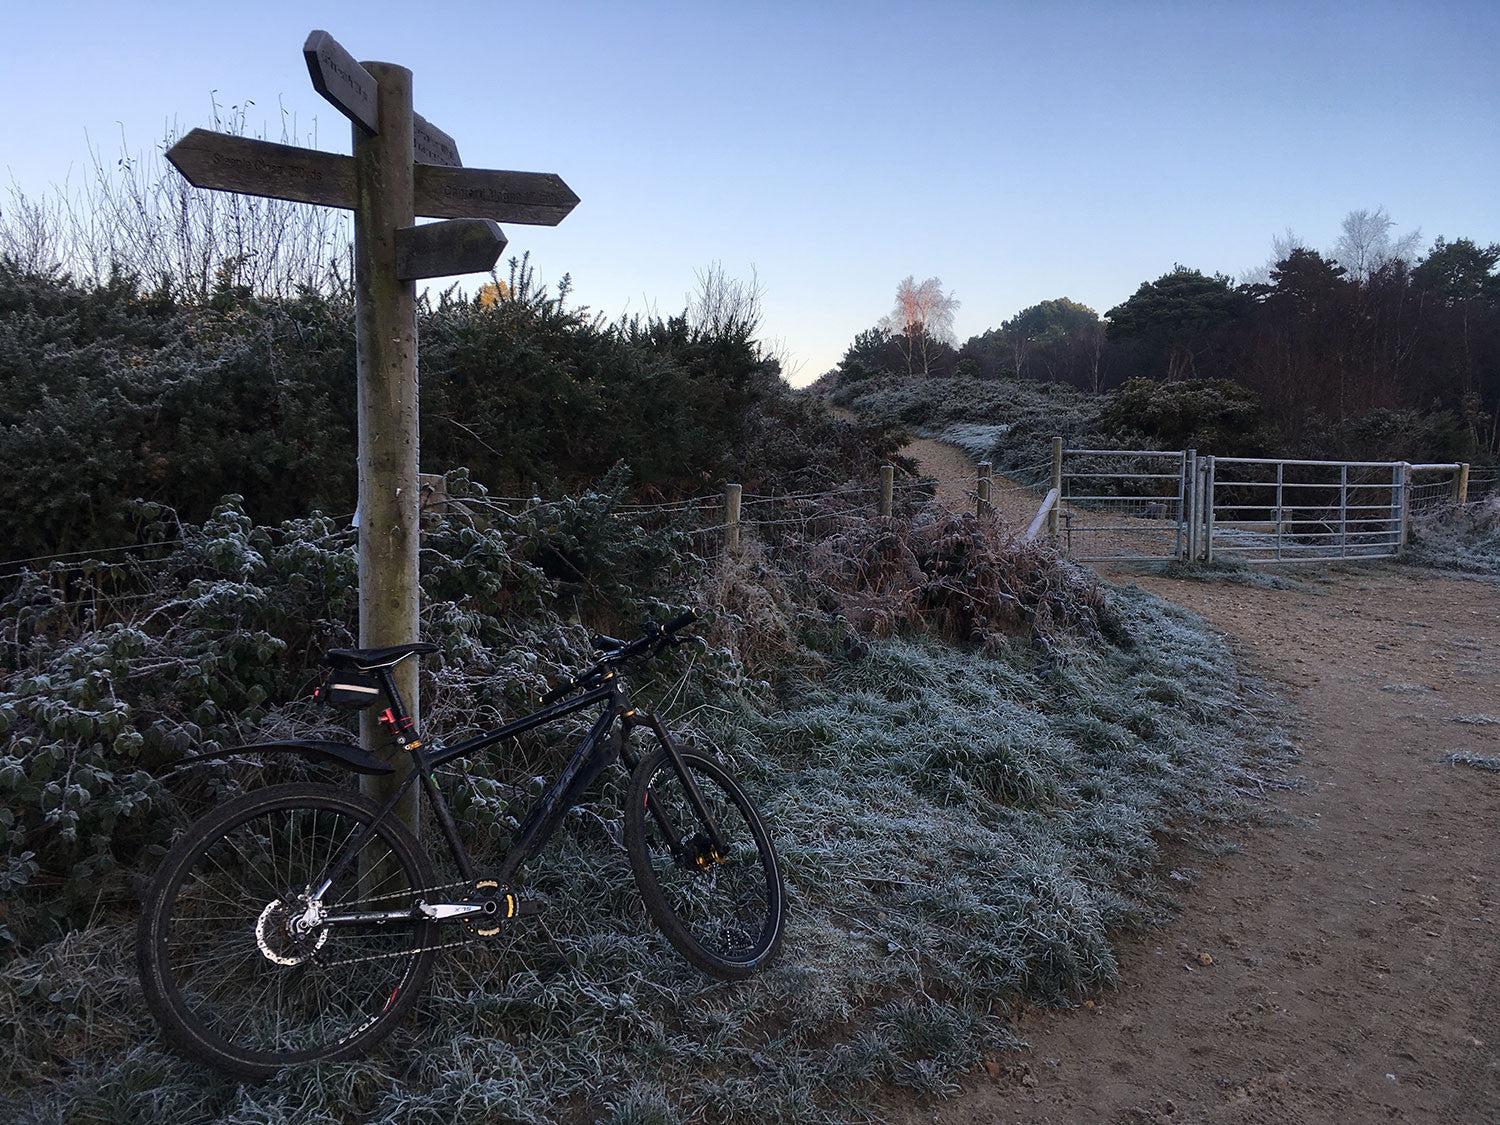 Between Christmas and New Year with some more relaxed start times I often add in an extra 30 minutes to encompass some extra miles - this is taken over Canford Heath - part of the Bourne Valley Greenway.